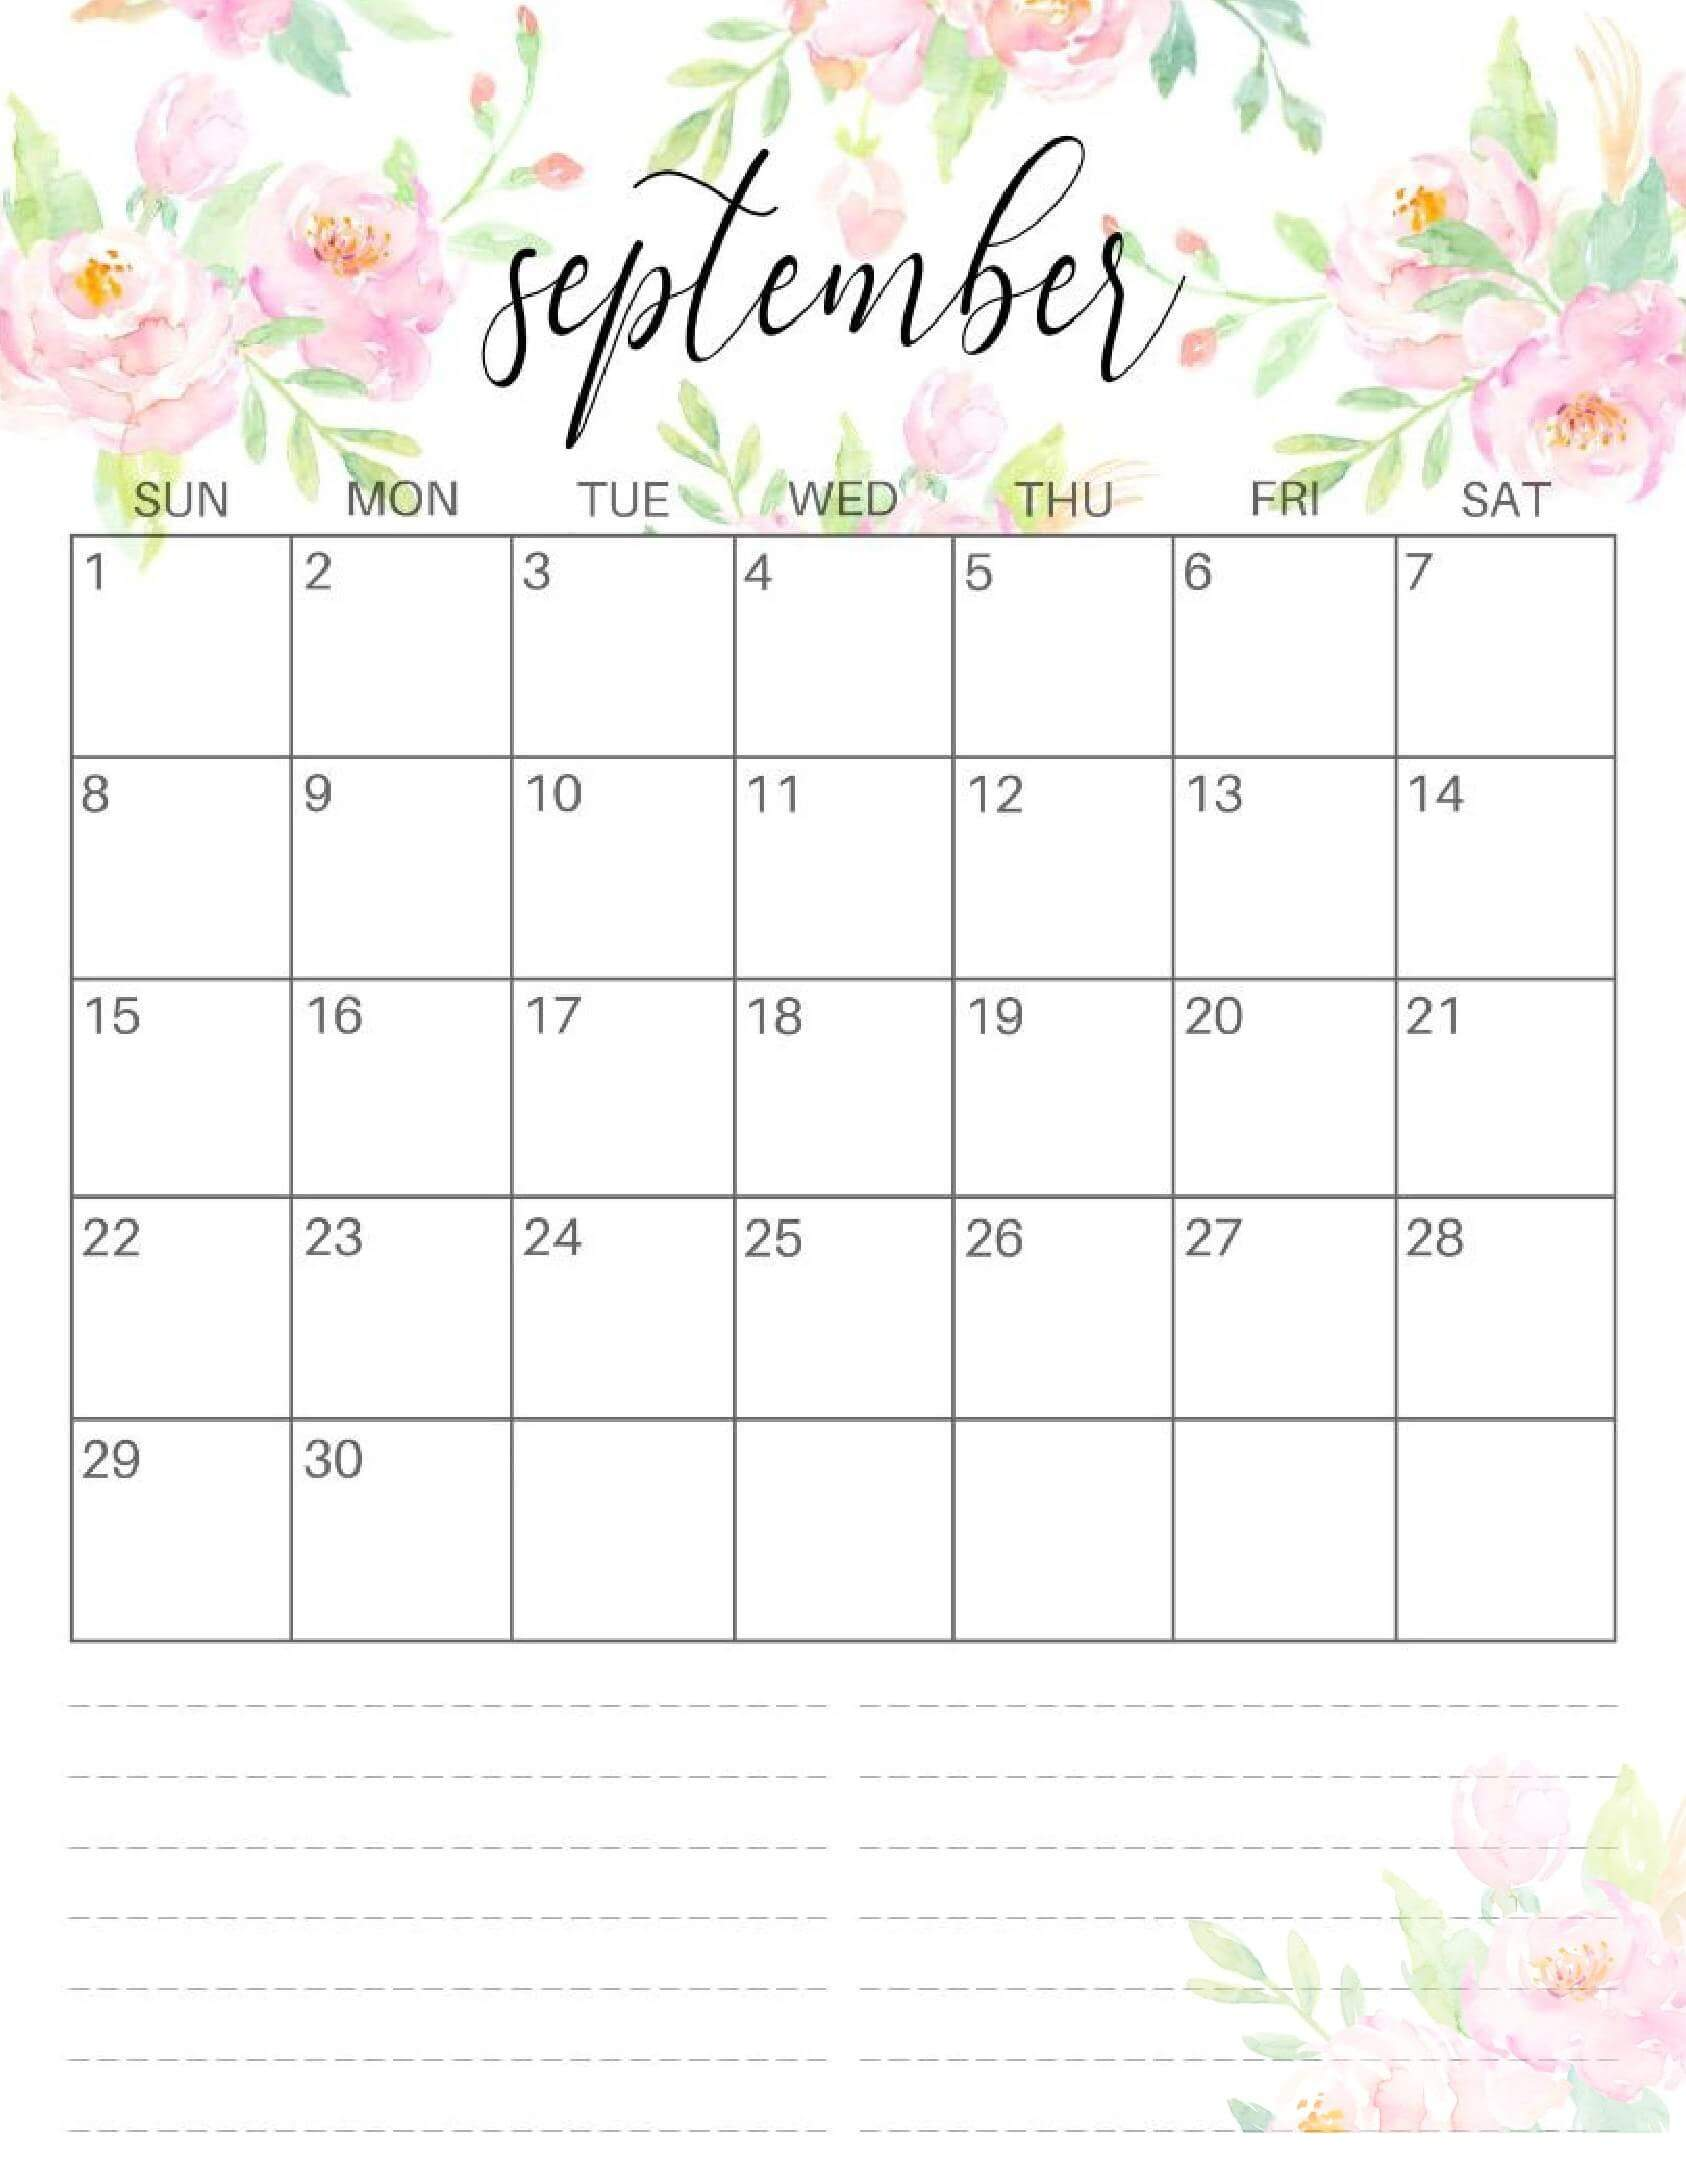 Cute September 2019 Calendar Wallpapers Image